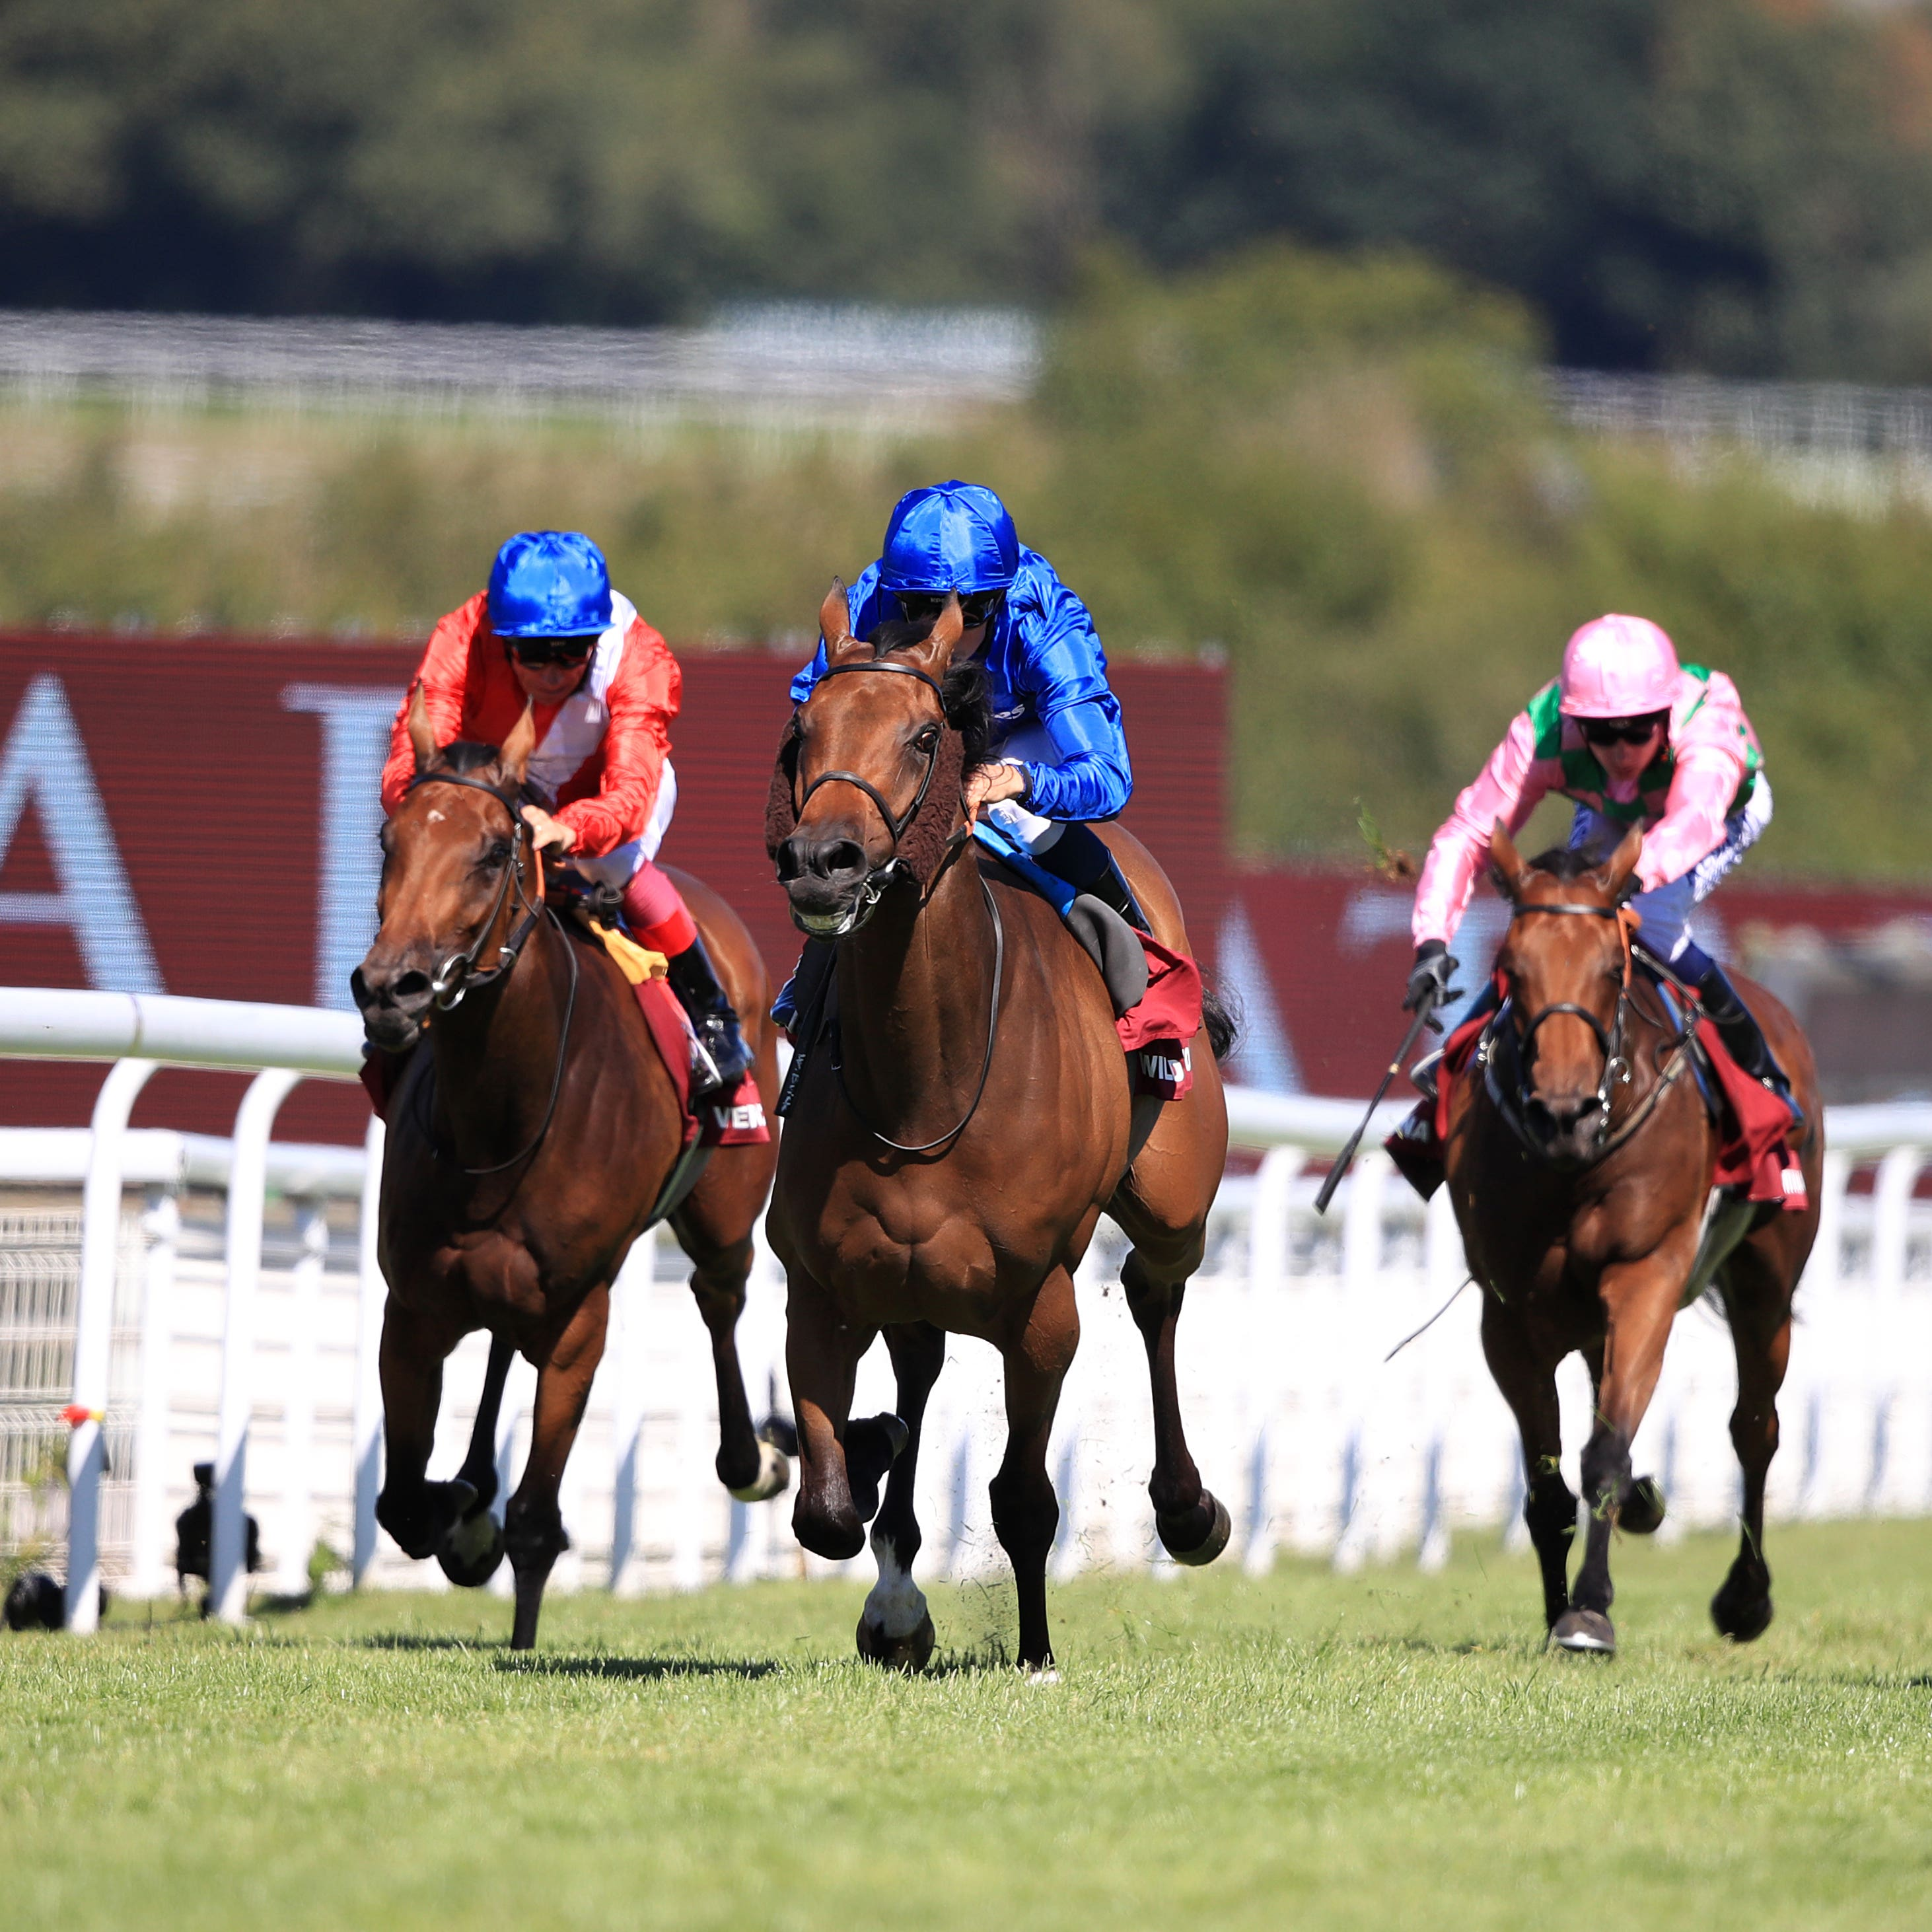 Wild Illusion and William Buick (blue silks) seen winning the Nassau Stakes at Goodwood